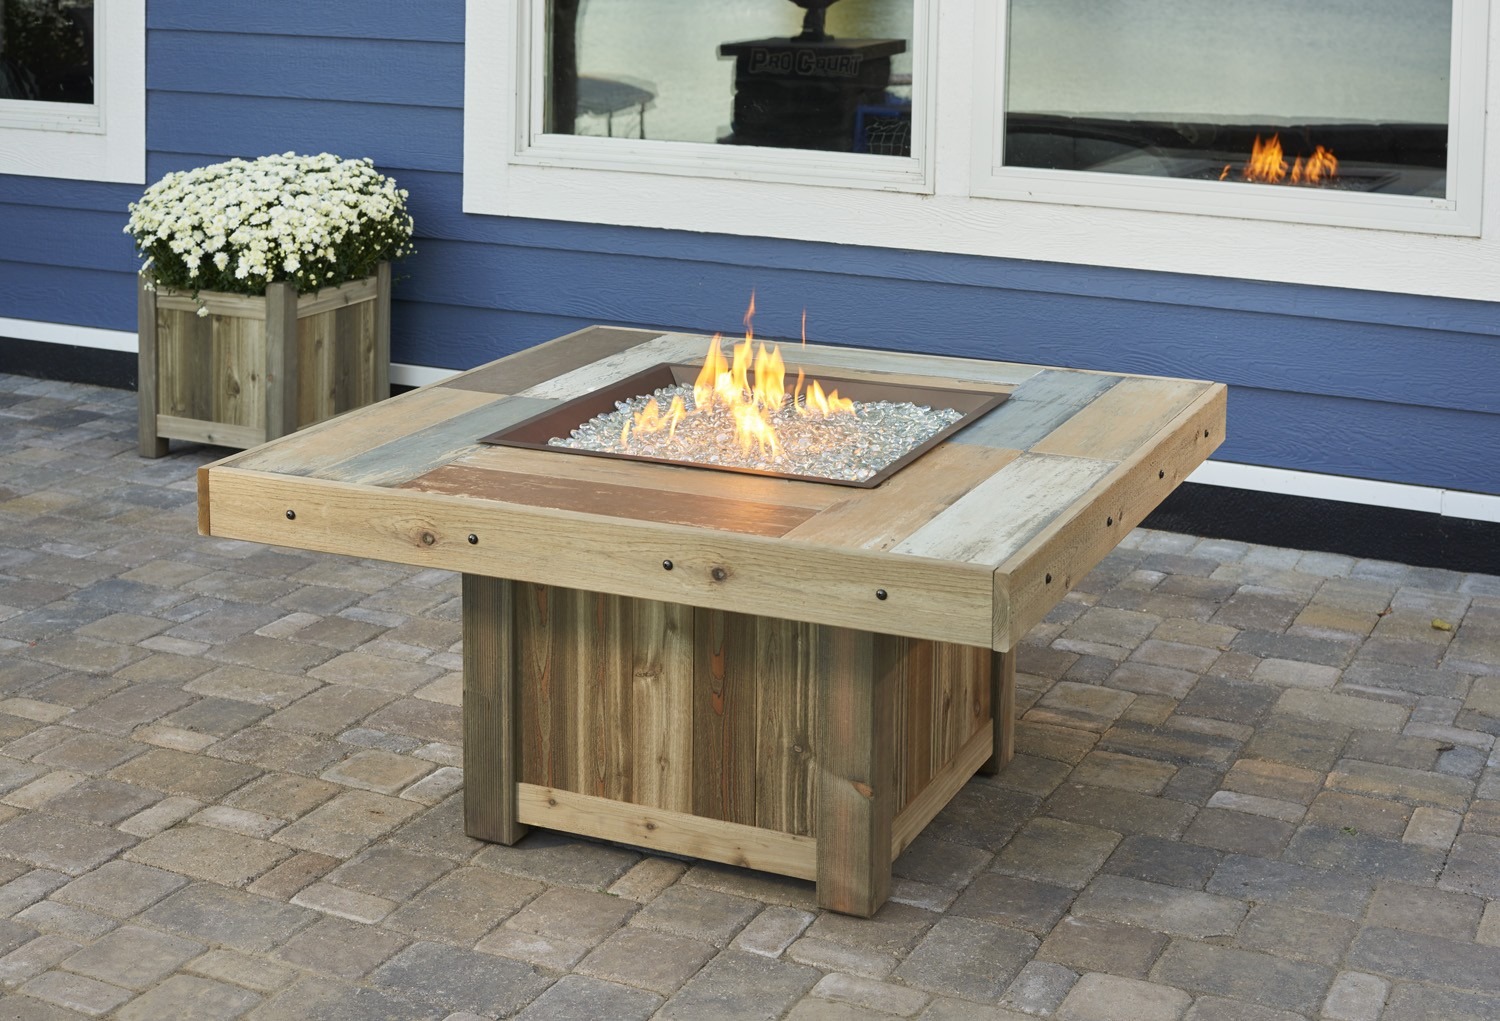 Outdoor Greatroom Vintage 48 25 Square Faux Wood Fire Table Outdoor Greatroom Company Square Vintage 2424 Fire Table